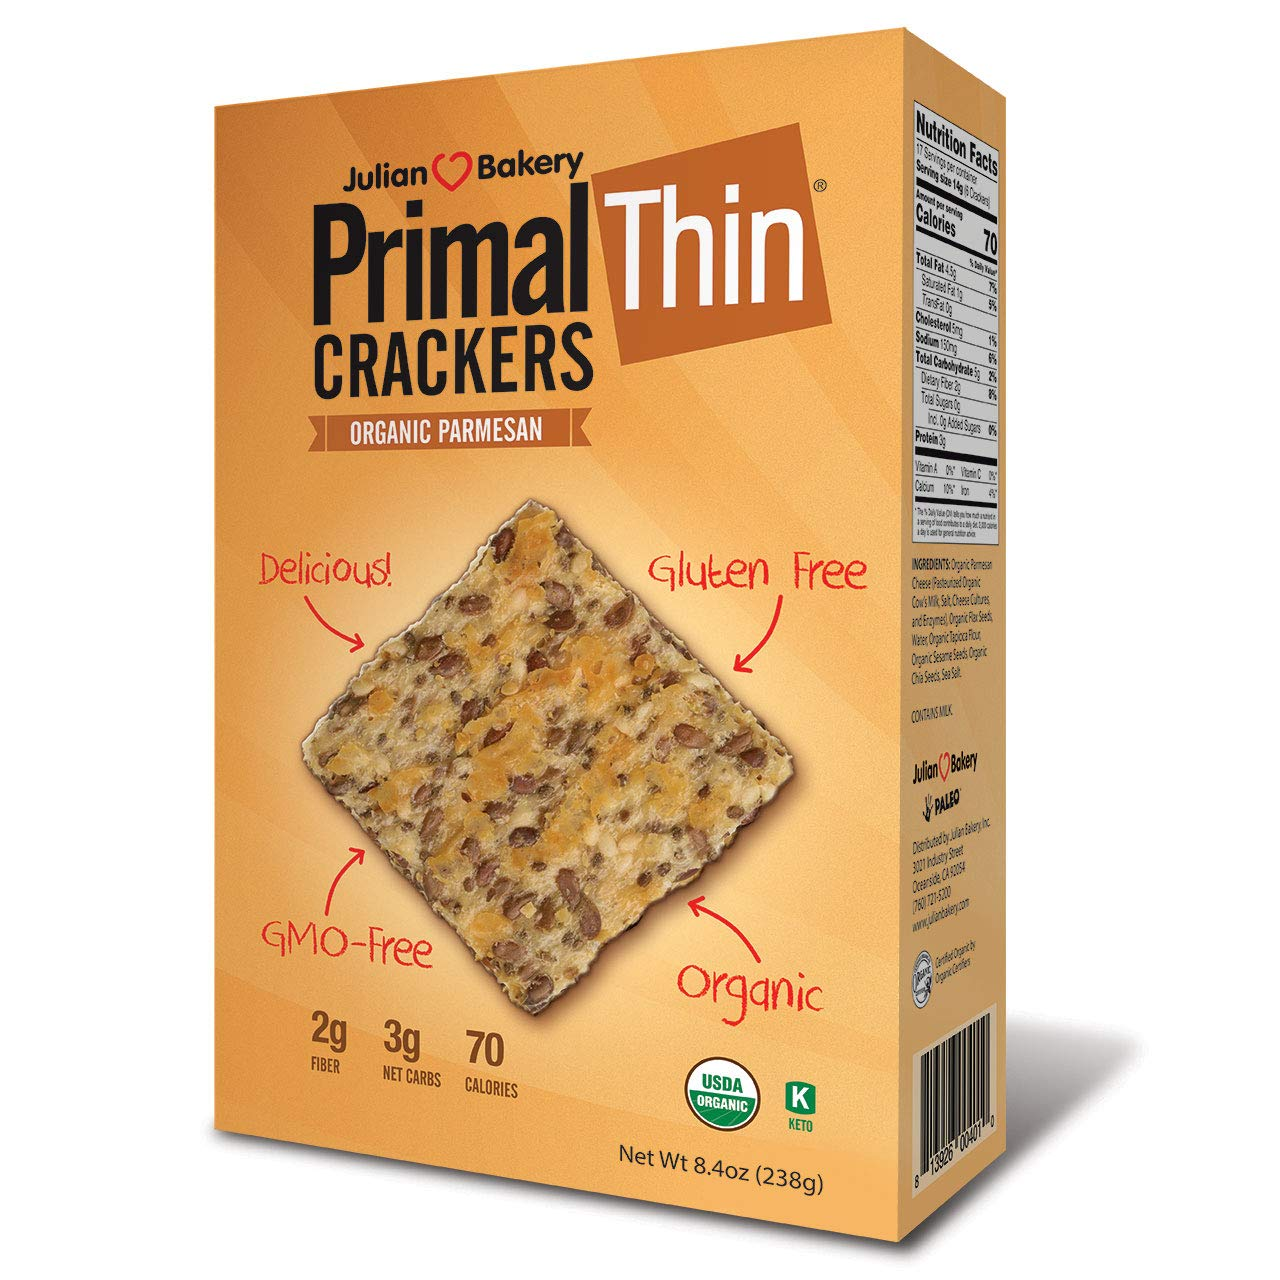 Primal Thin Crackers (Parmesan)(Organic)(Low Carb, Gluten Free, Grain Free) (8.4oz) by Julian Bakery